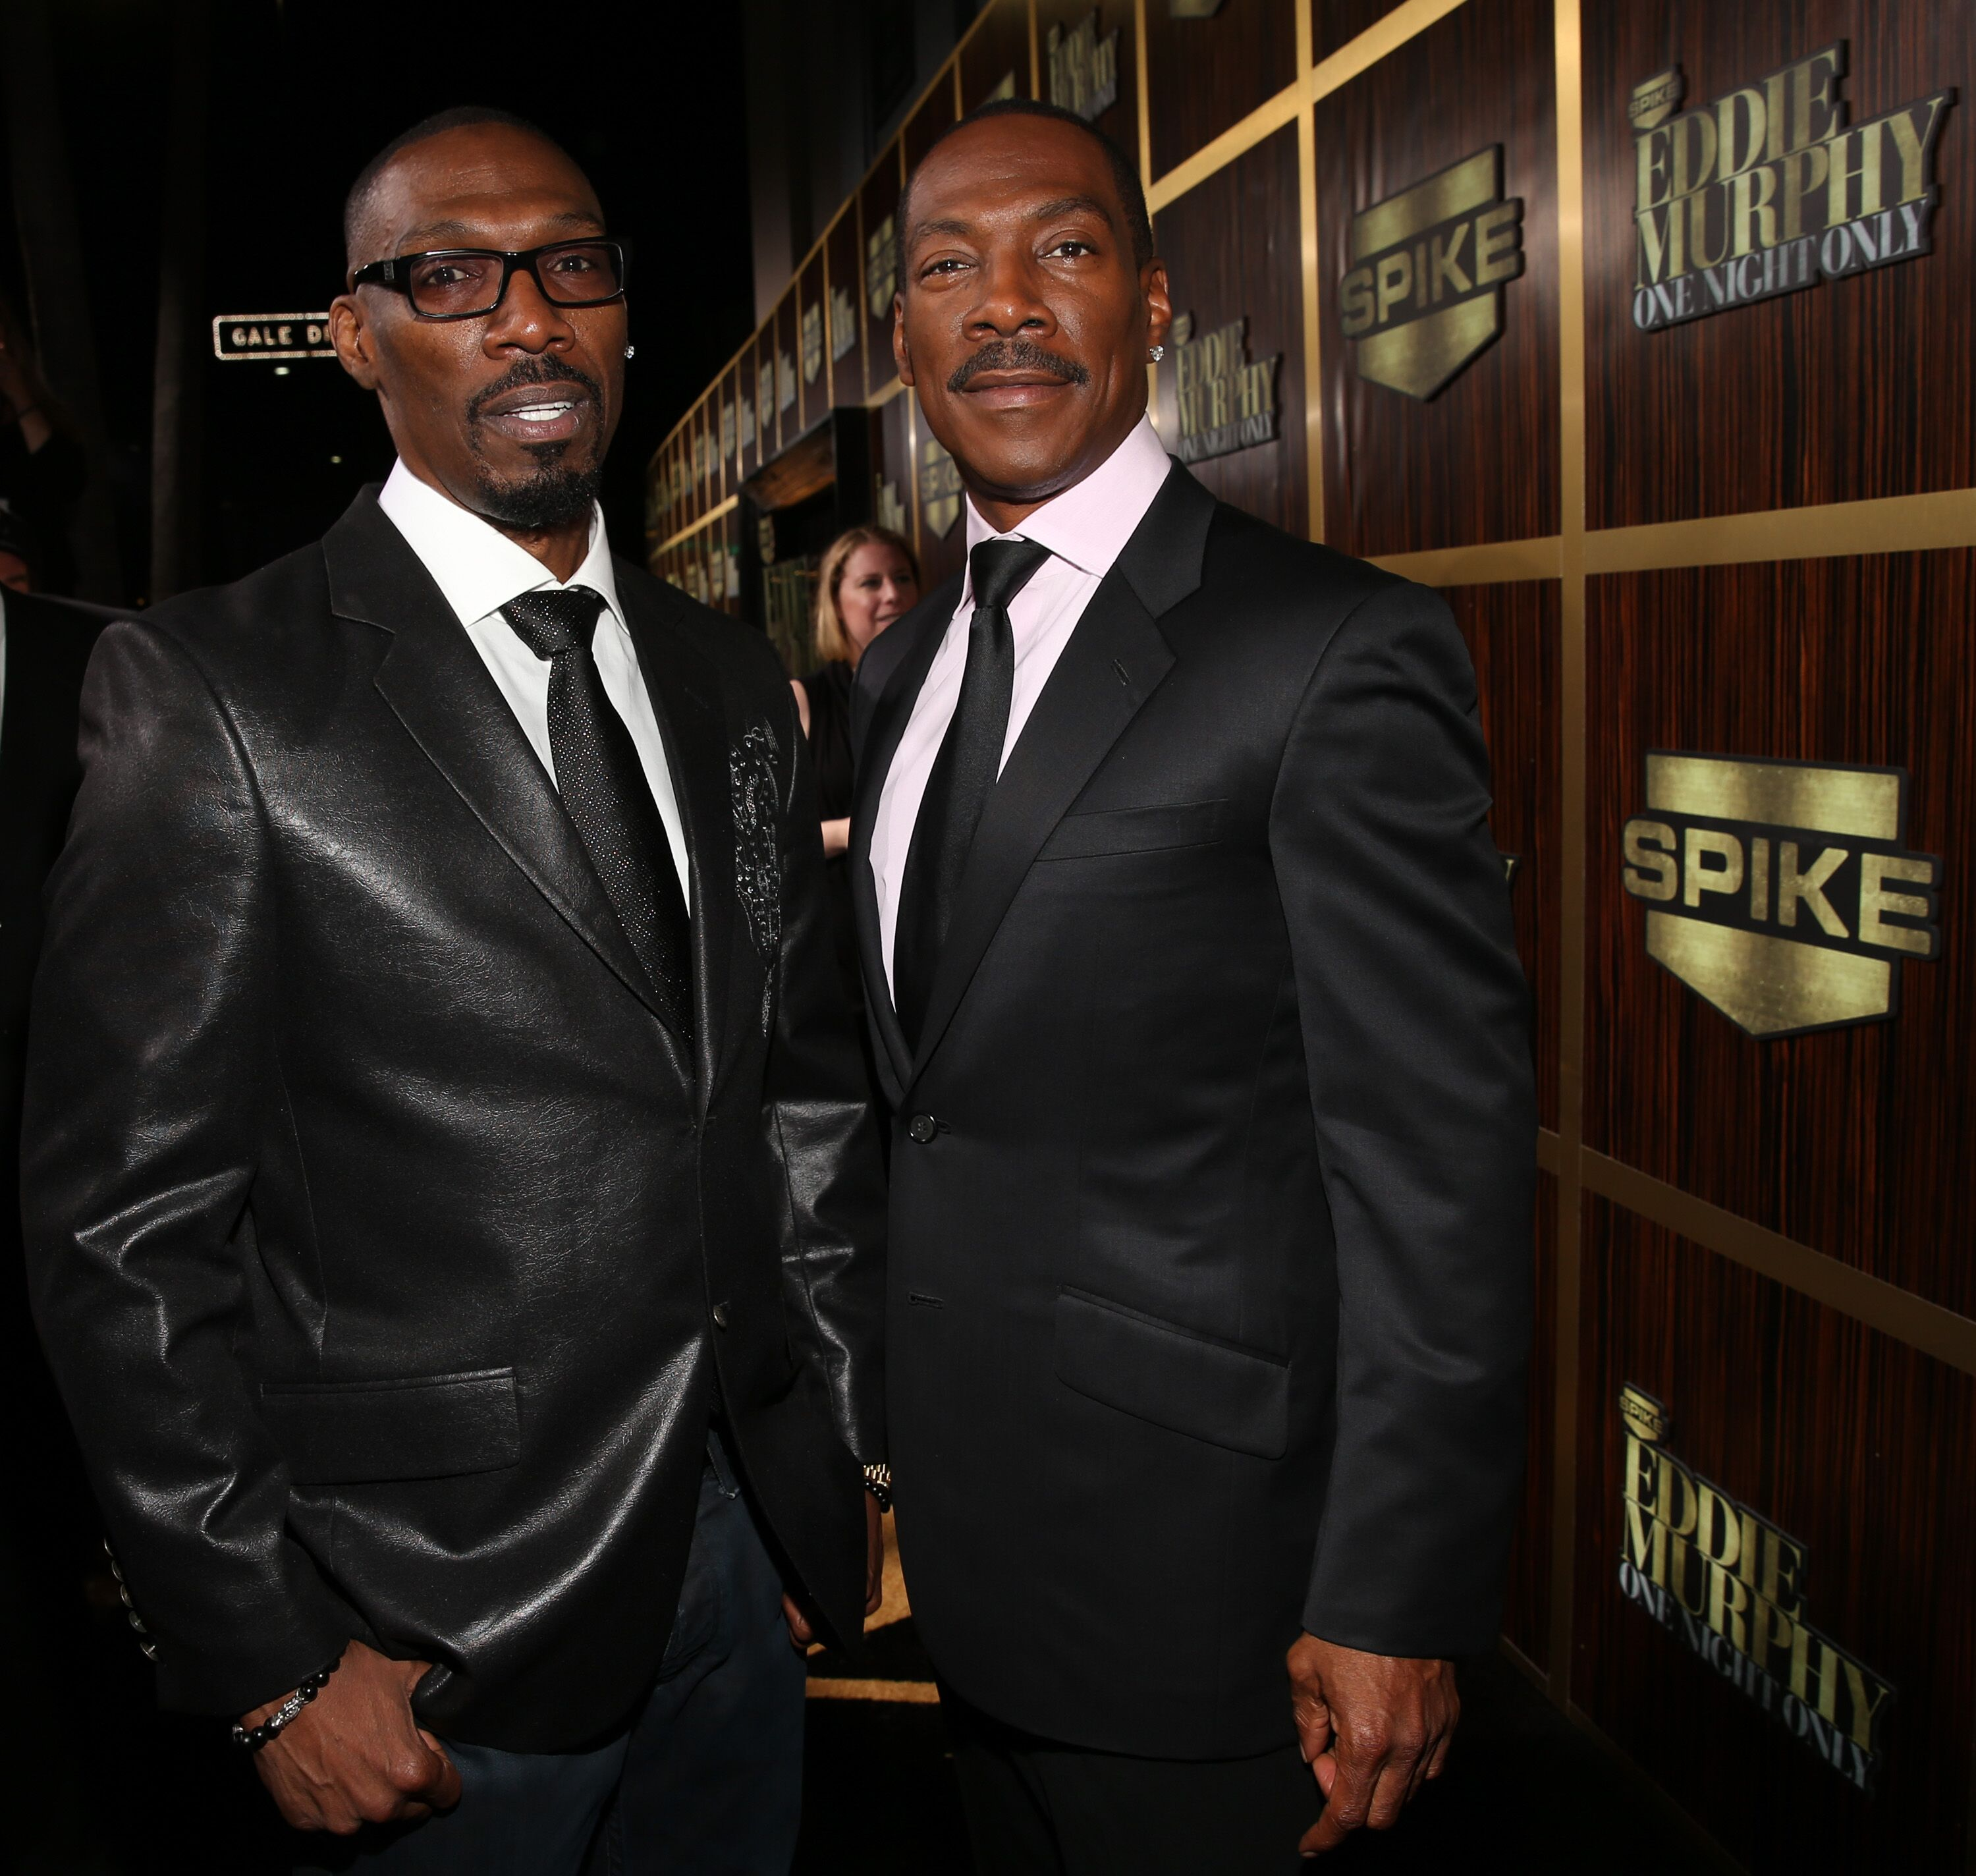 """Charlie Murphy and Eddie Murphy arrive on the red carpet at """"Eddie Murphy: One Night Only"""" on November 3, 2012 in Beverly Hills, California 